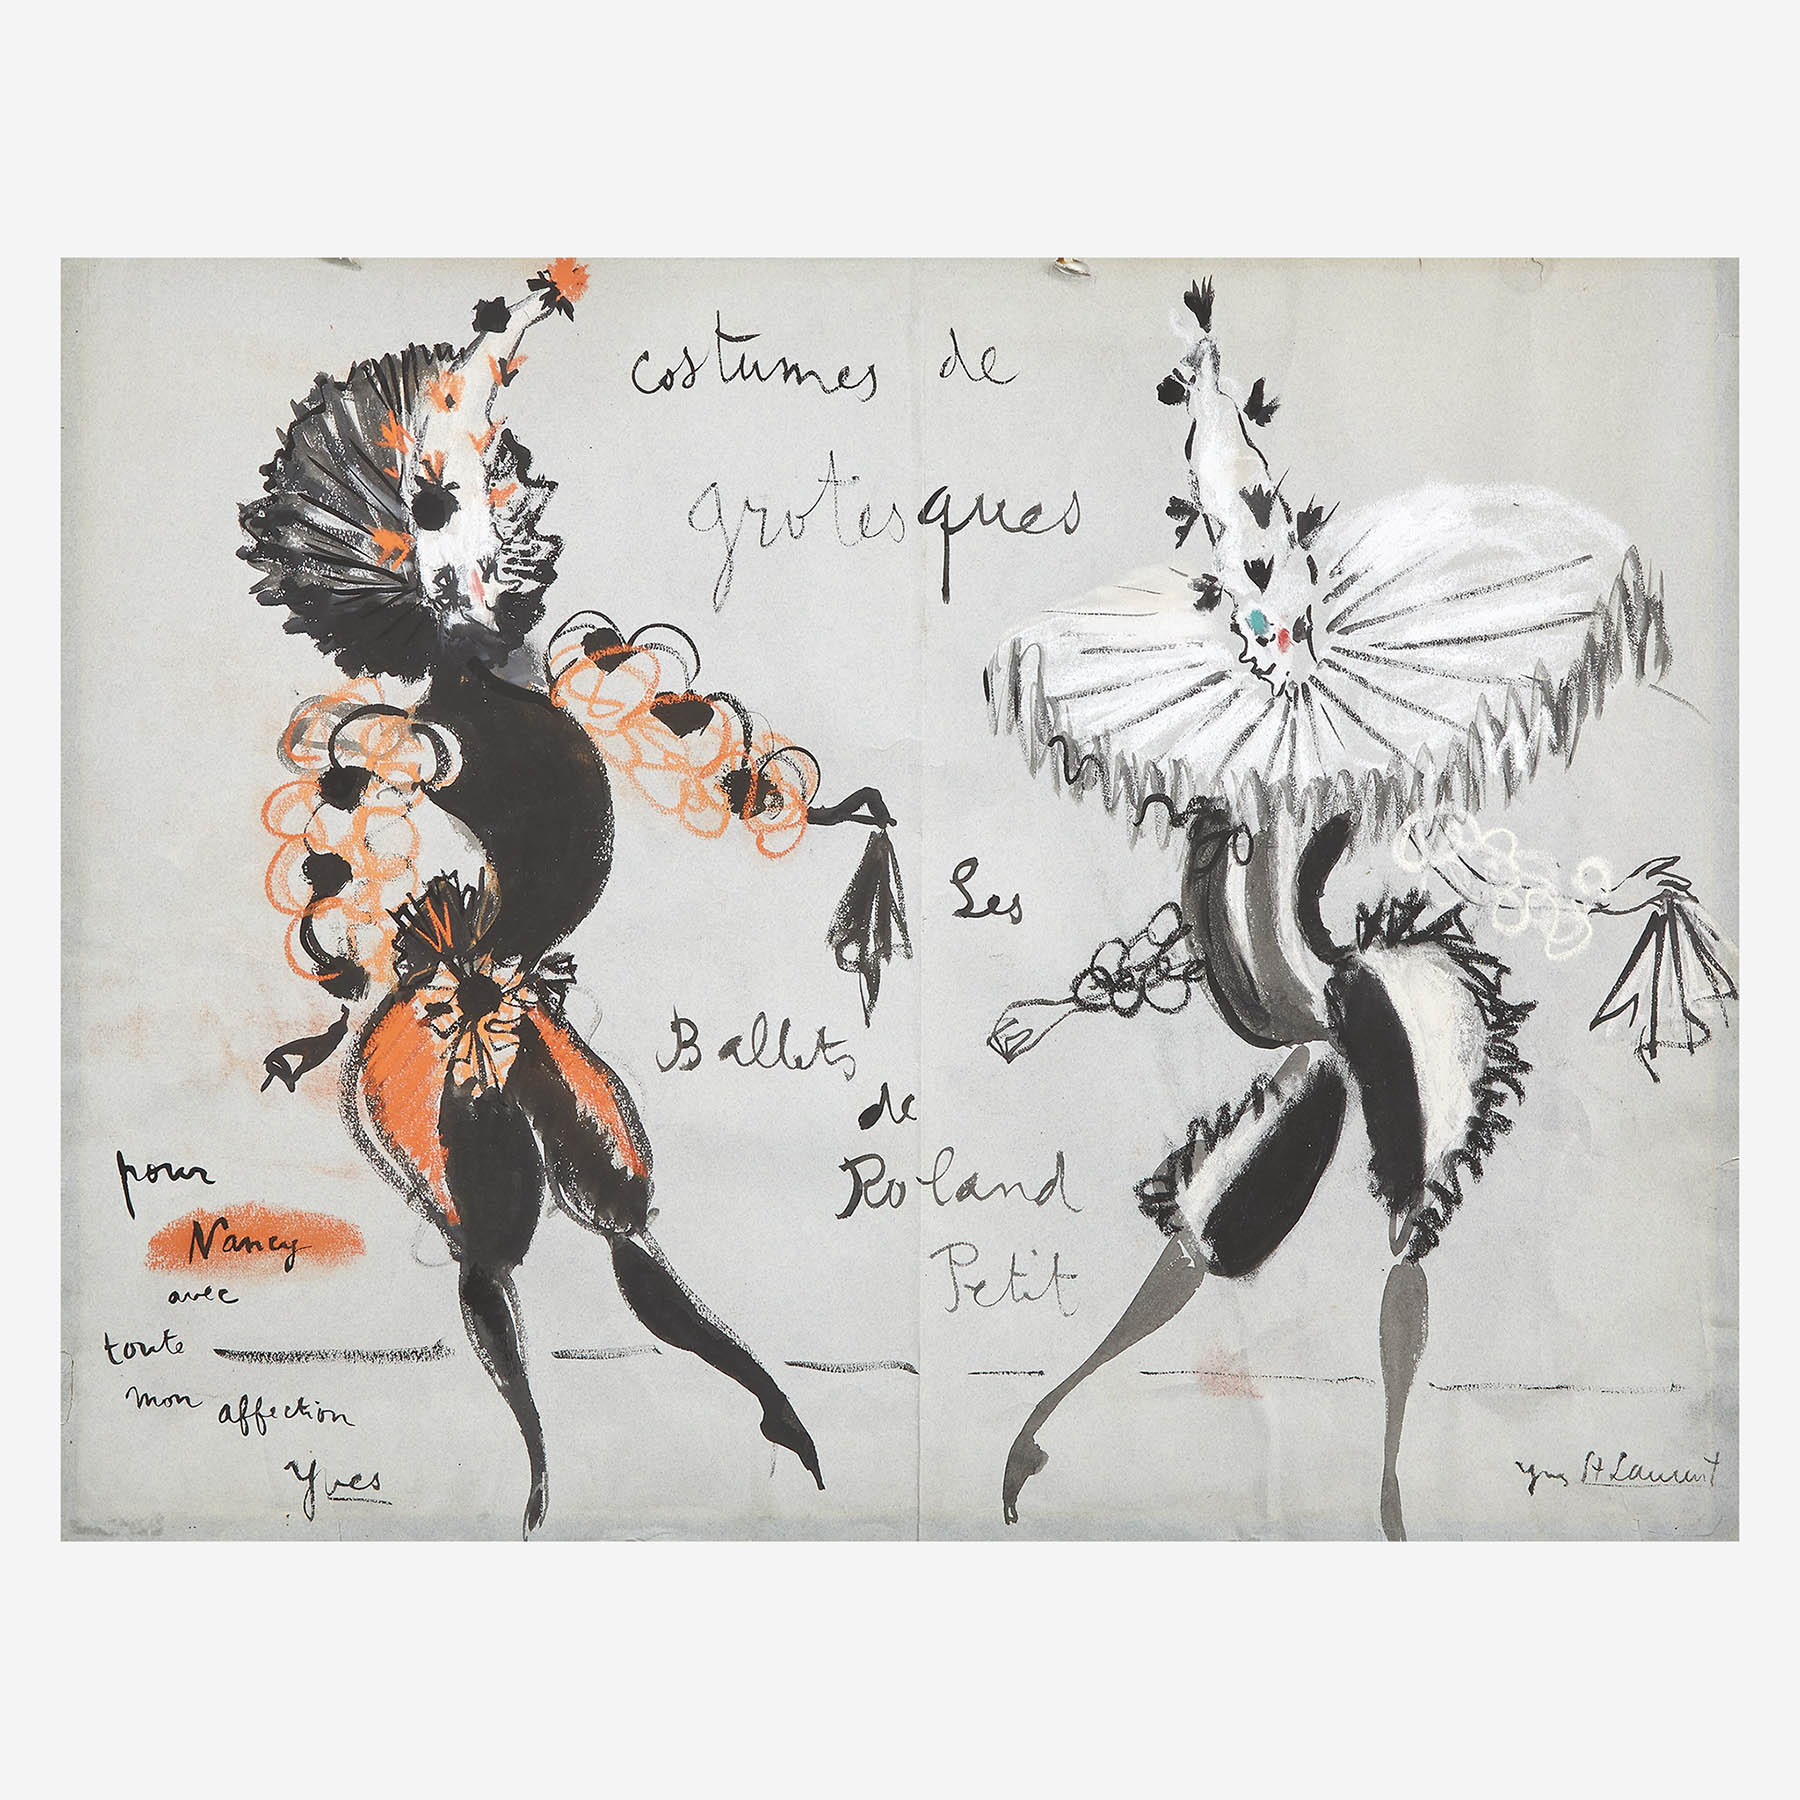 Yves Saint Laurent (French, 1936-2008) Costumes de Grotesques Les Ballets de Roland Petit [with additional fashion drawing verso]